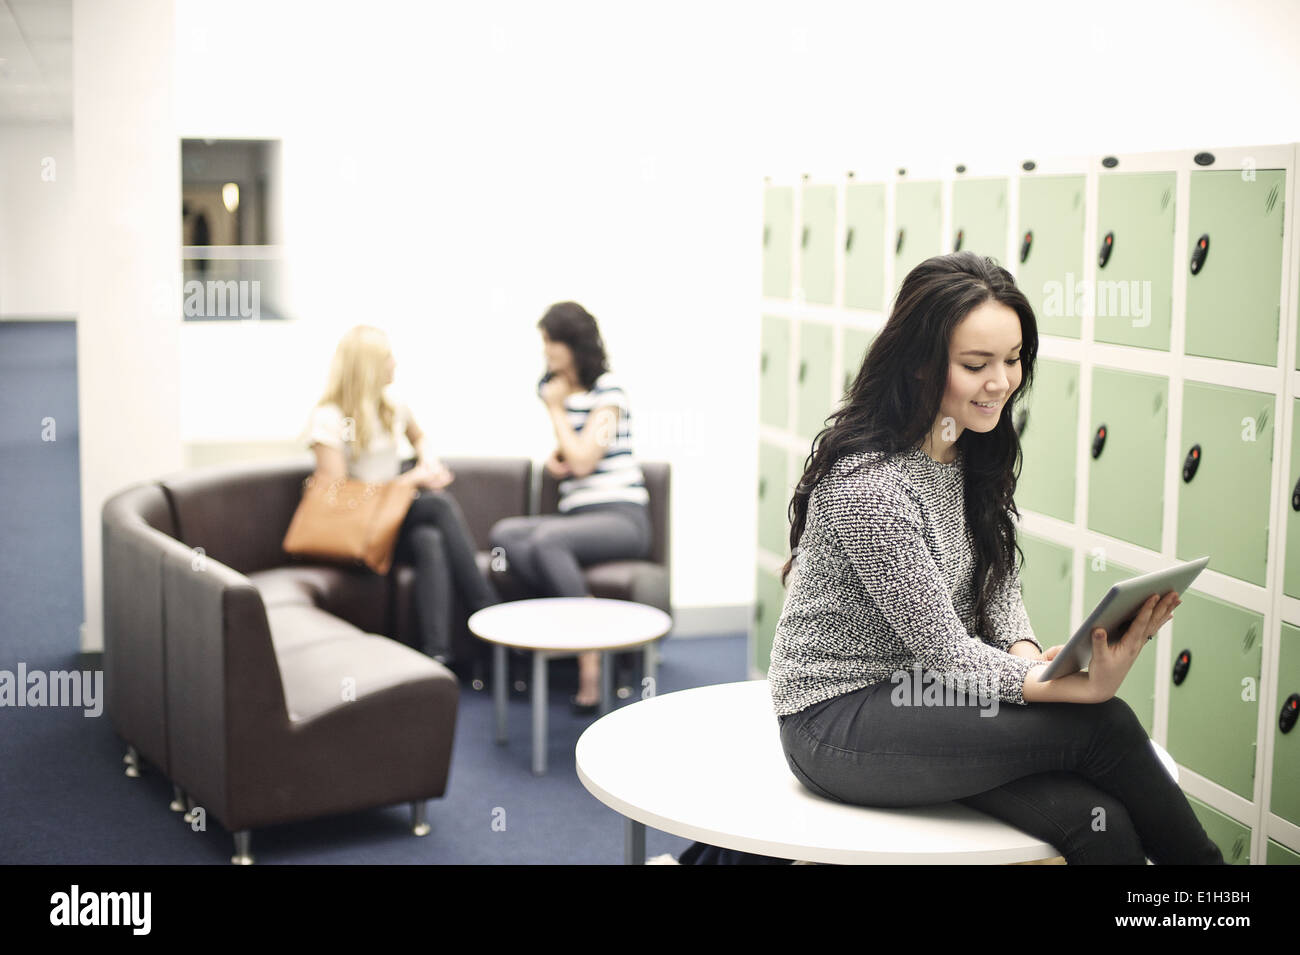 Young woman sitting on table using digital tablet - Stock Image